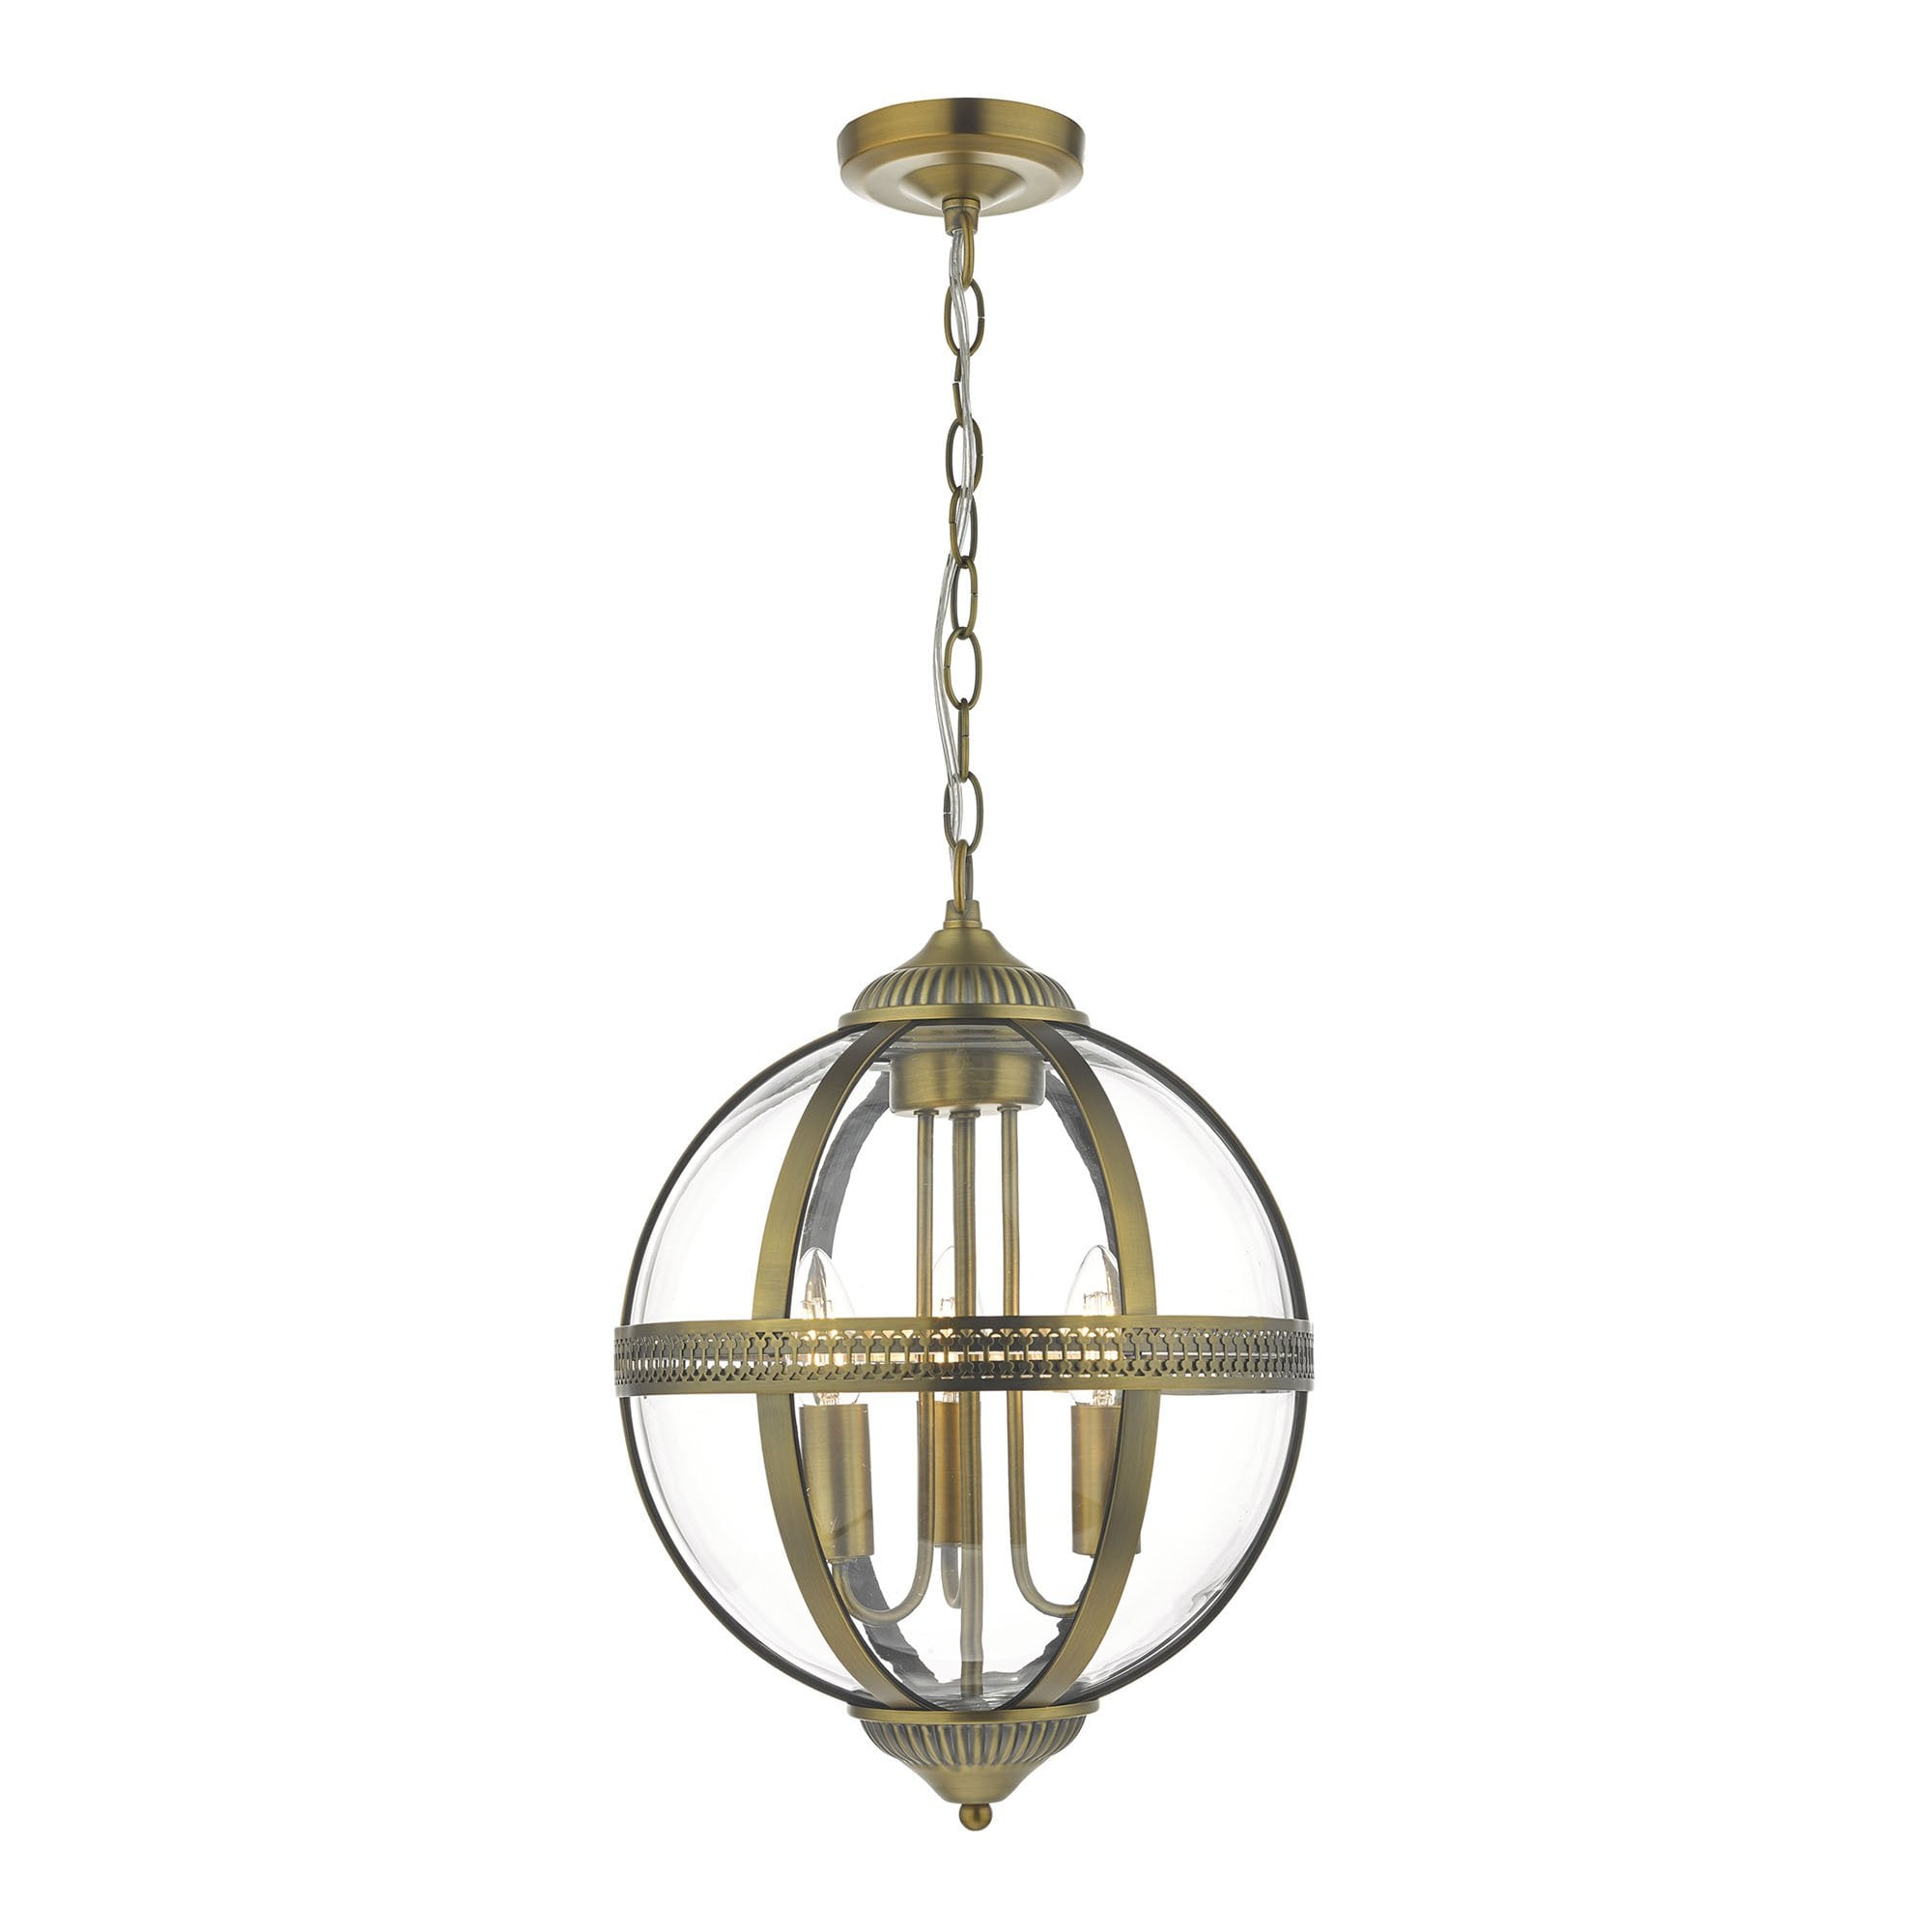 Victorian Style Clear Glass Globe Ceiling Pendant With Decorative Bands